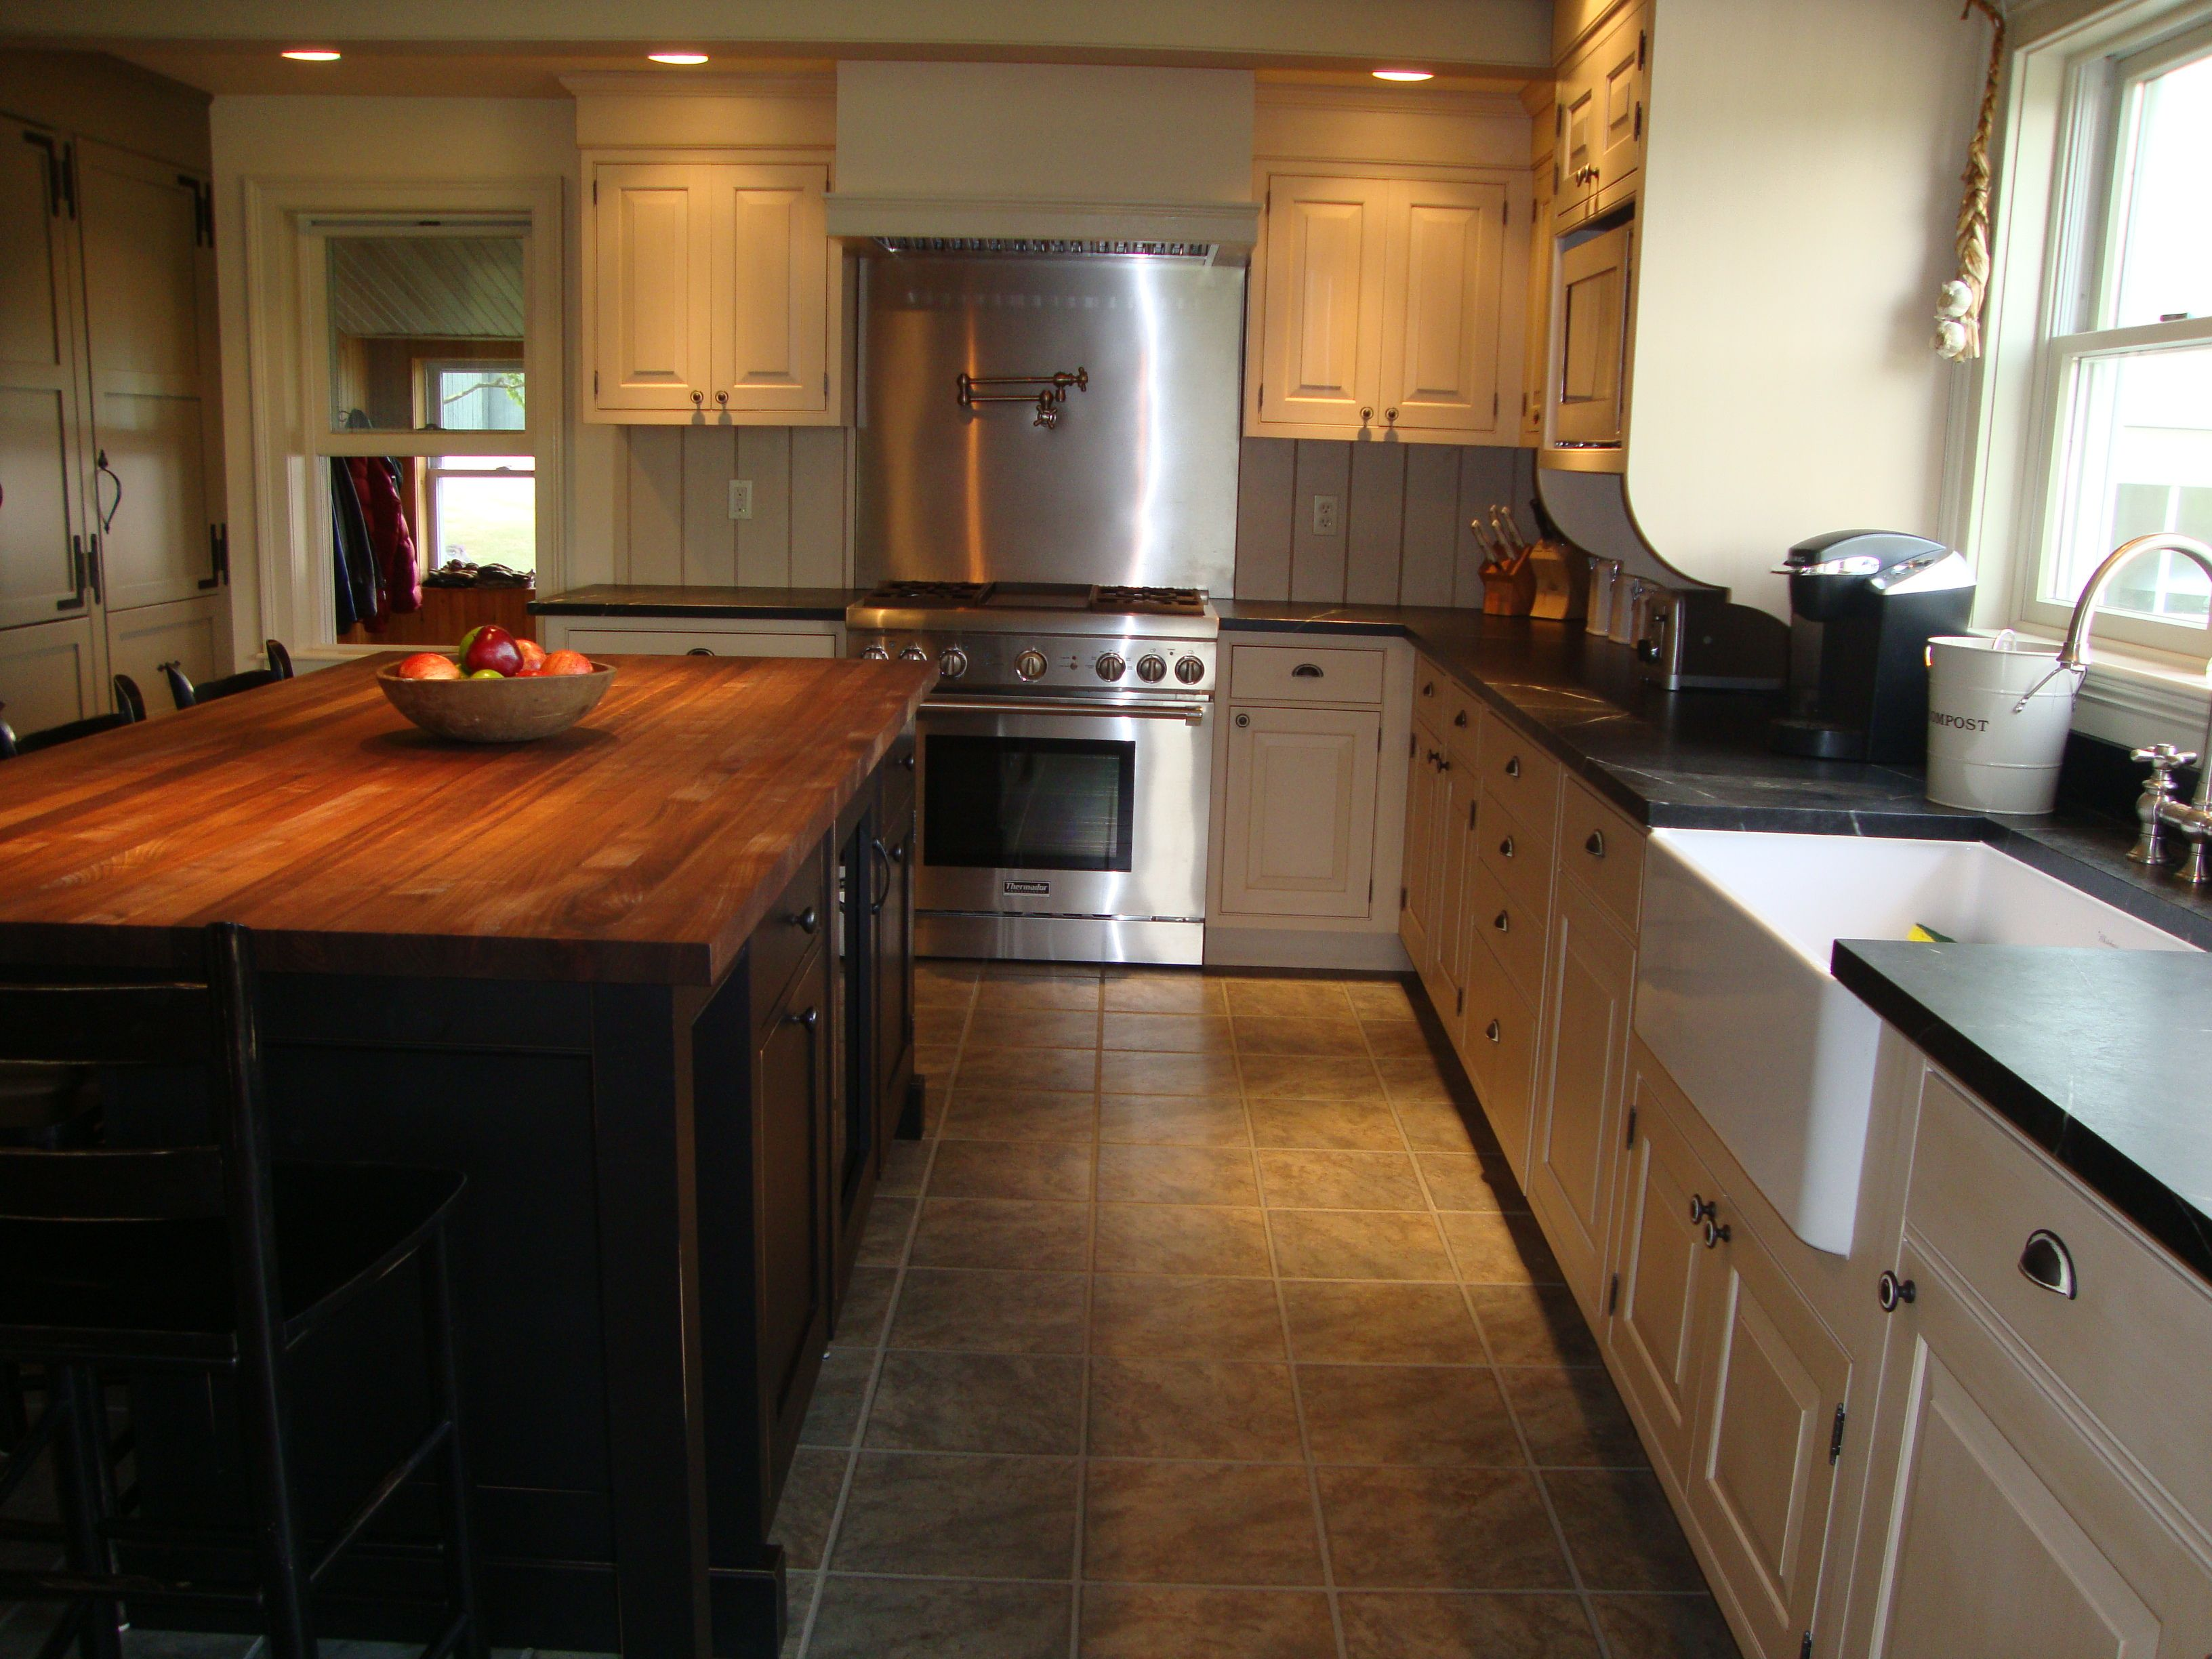 Kitchen Island Butcher Block Tops Antique White Cabinets Black Island Google Search Turks Bound